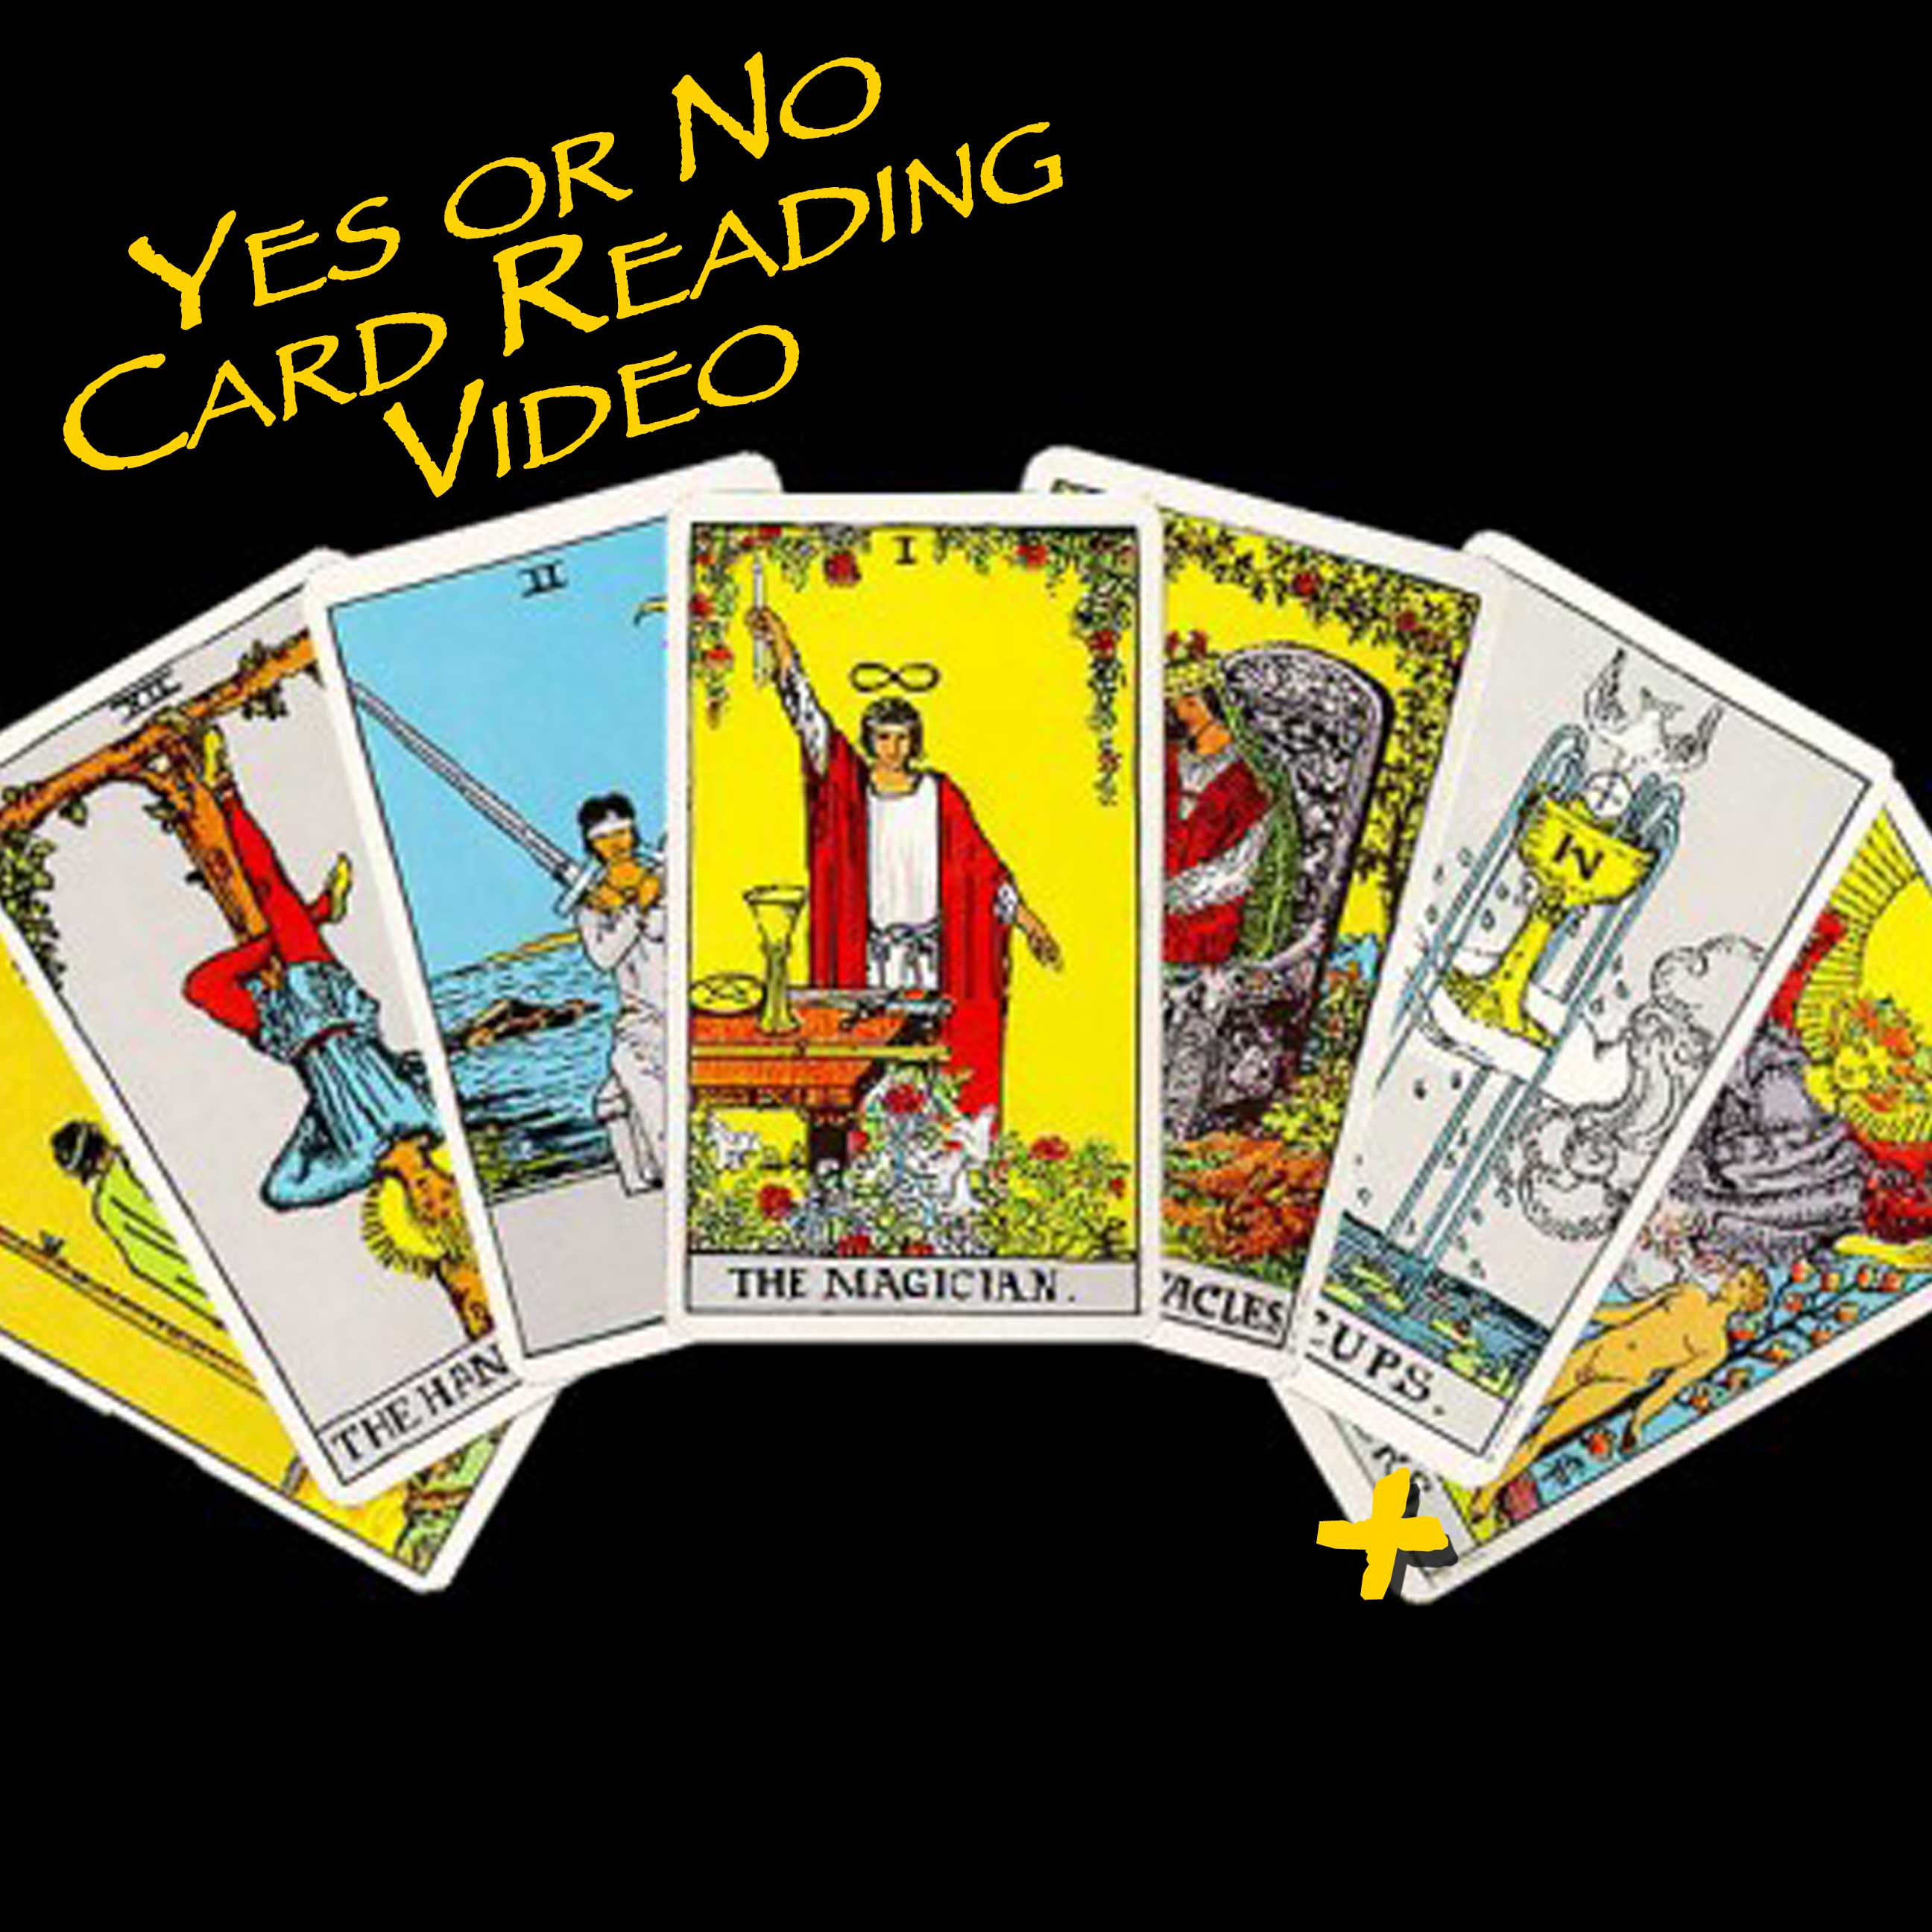 The yes card